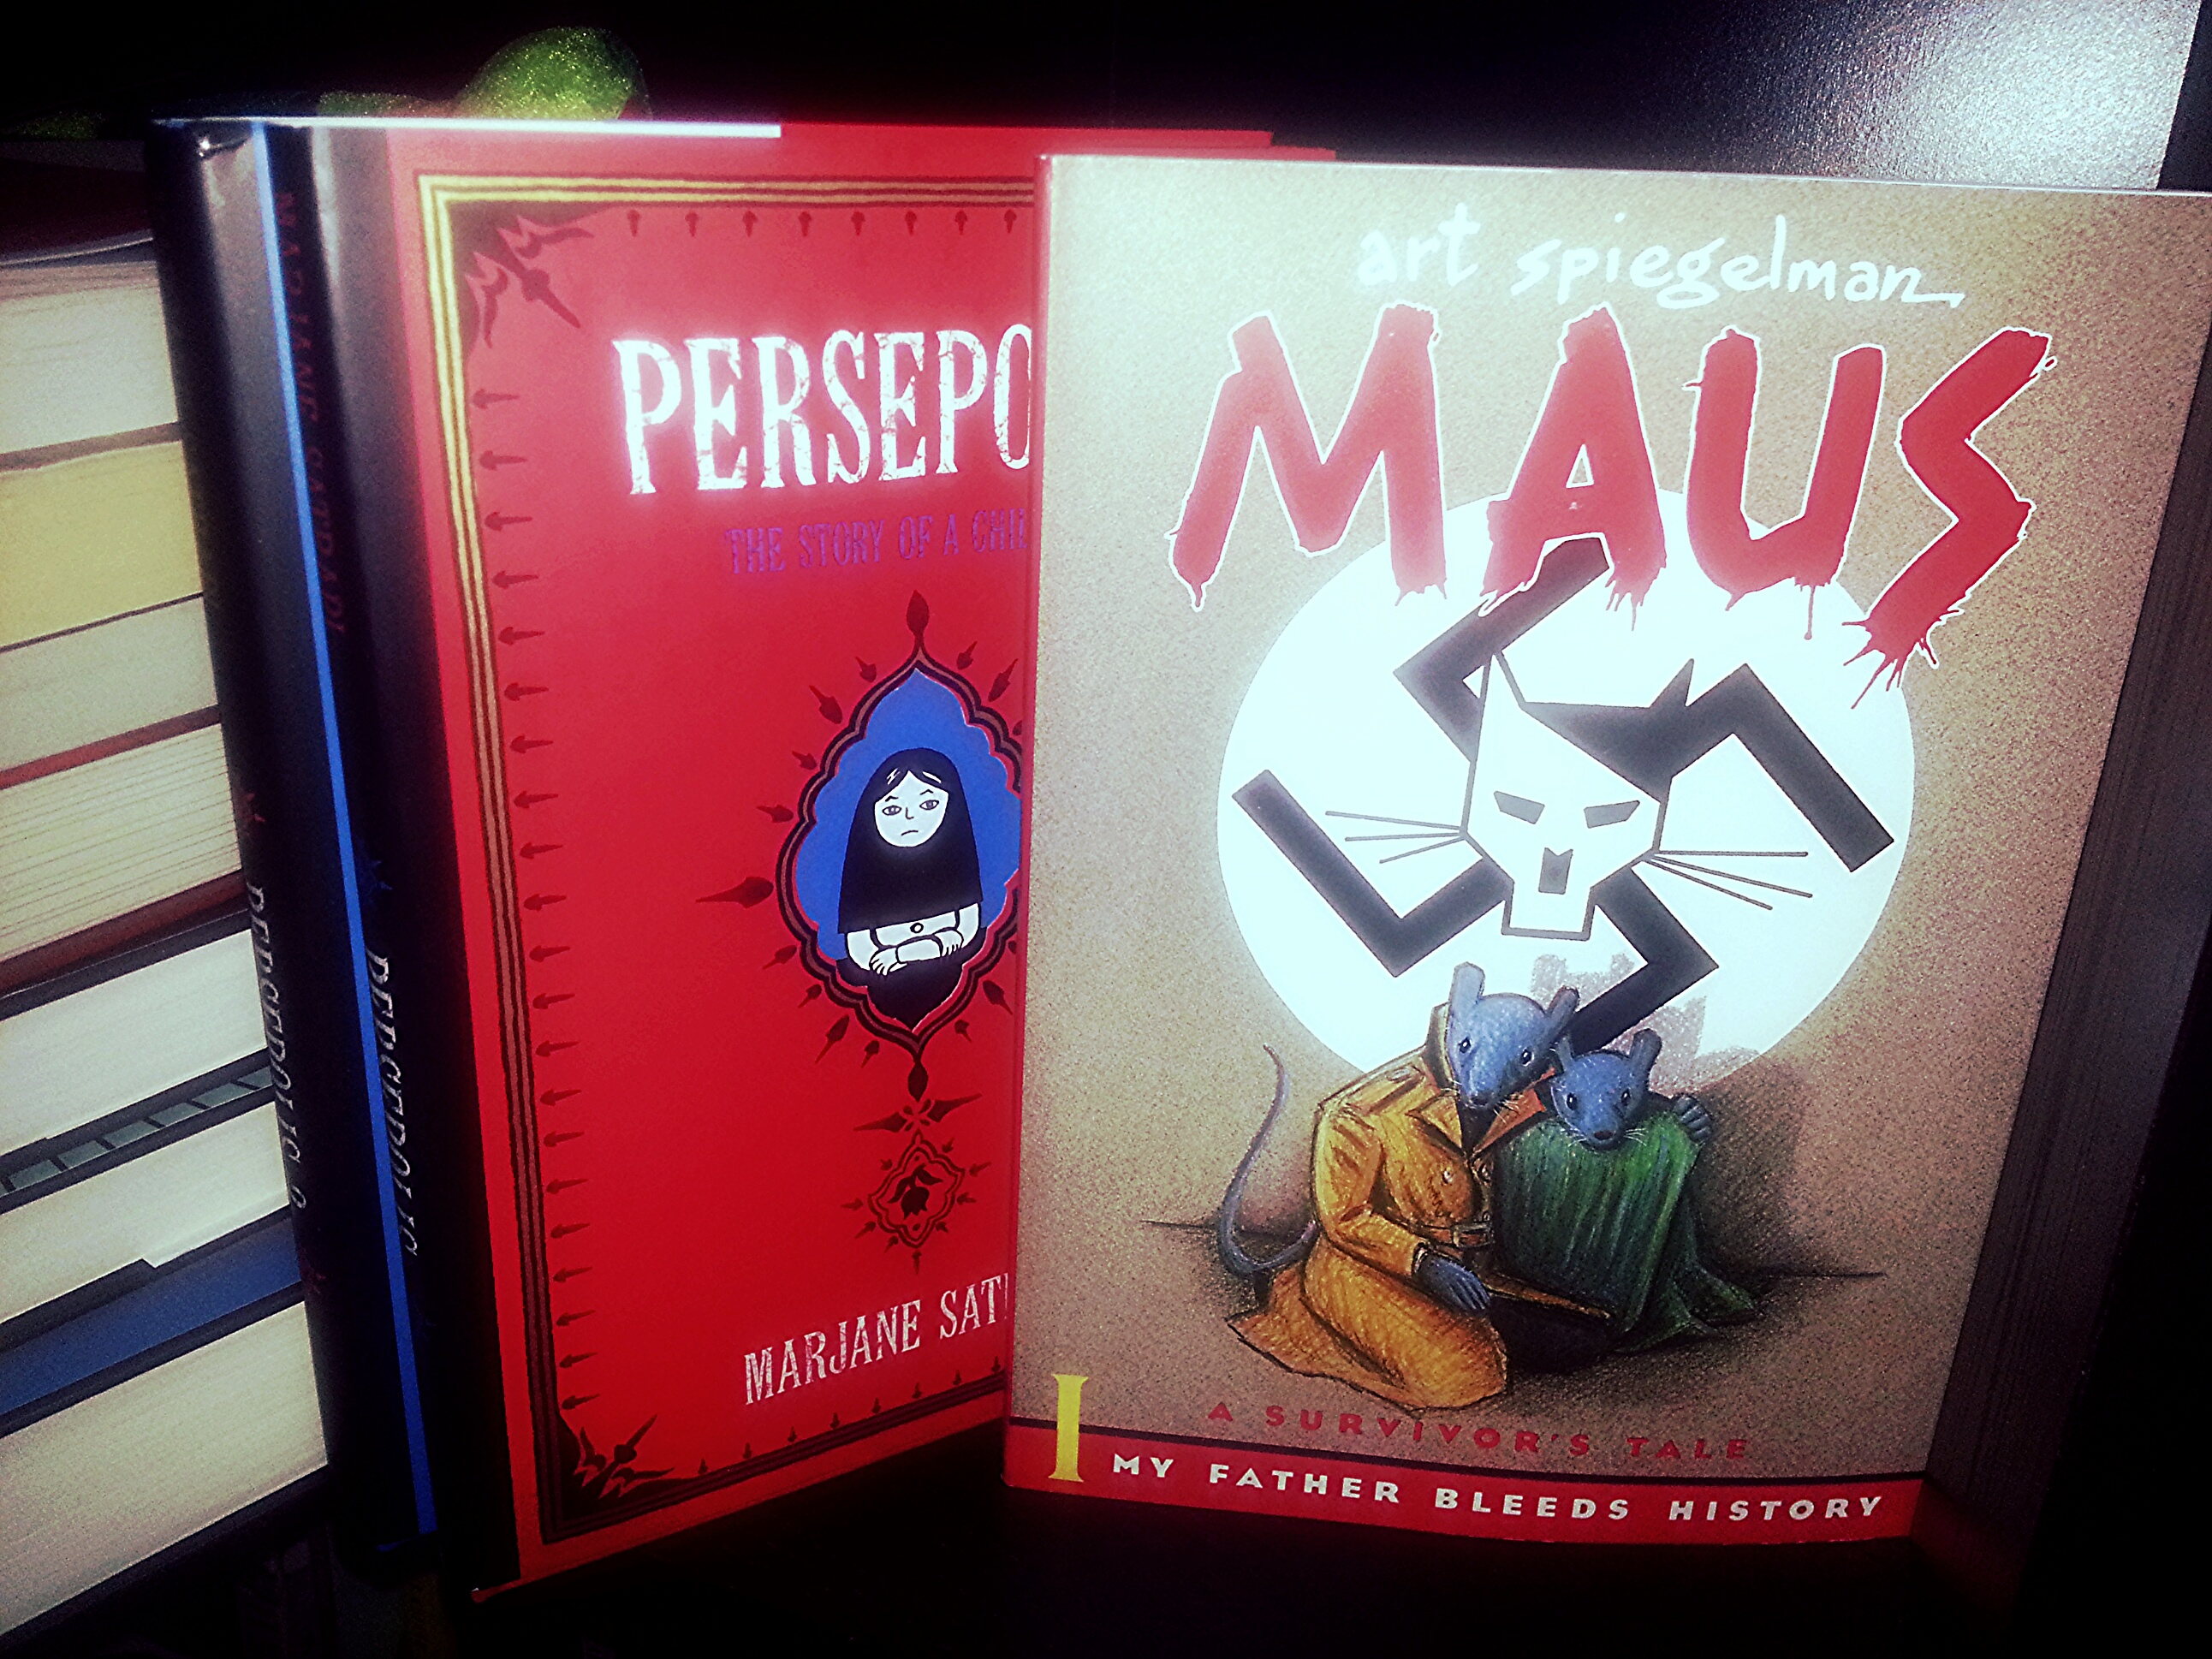 maus essay maus by art spiegelman and persepolis by marjane  maus by art spiegelman and persepolis by marjane satrapi the 20131001 094123